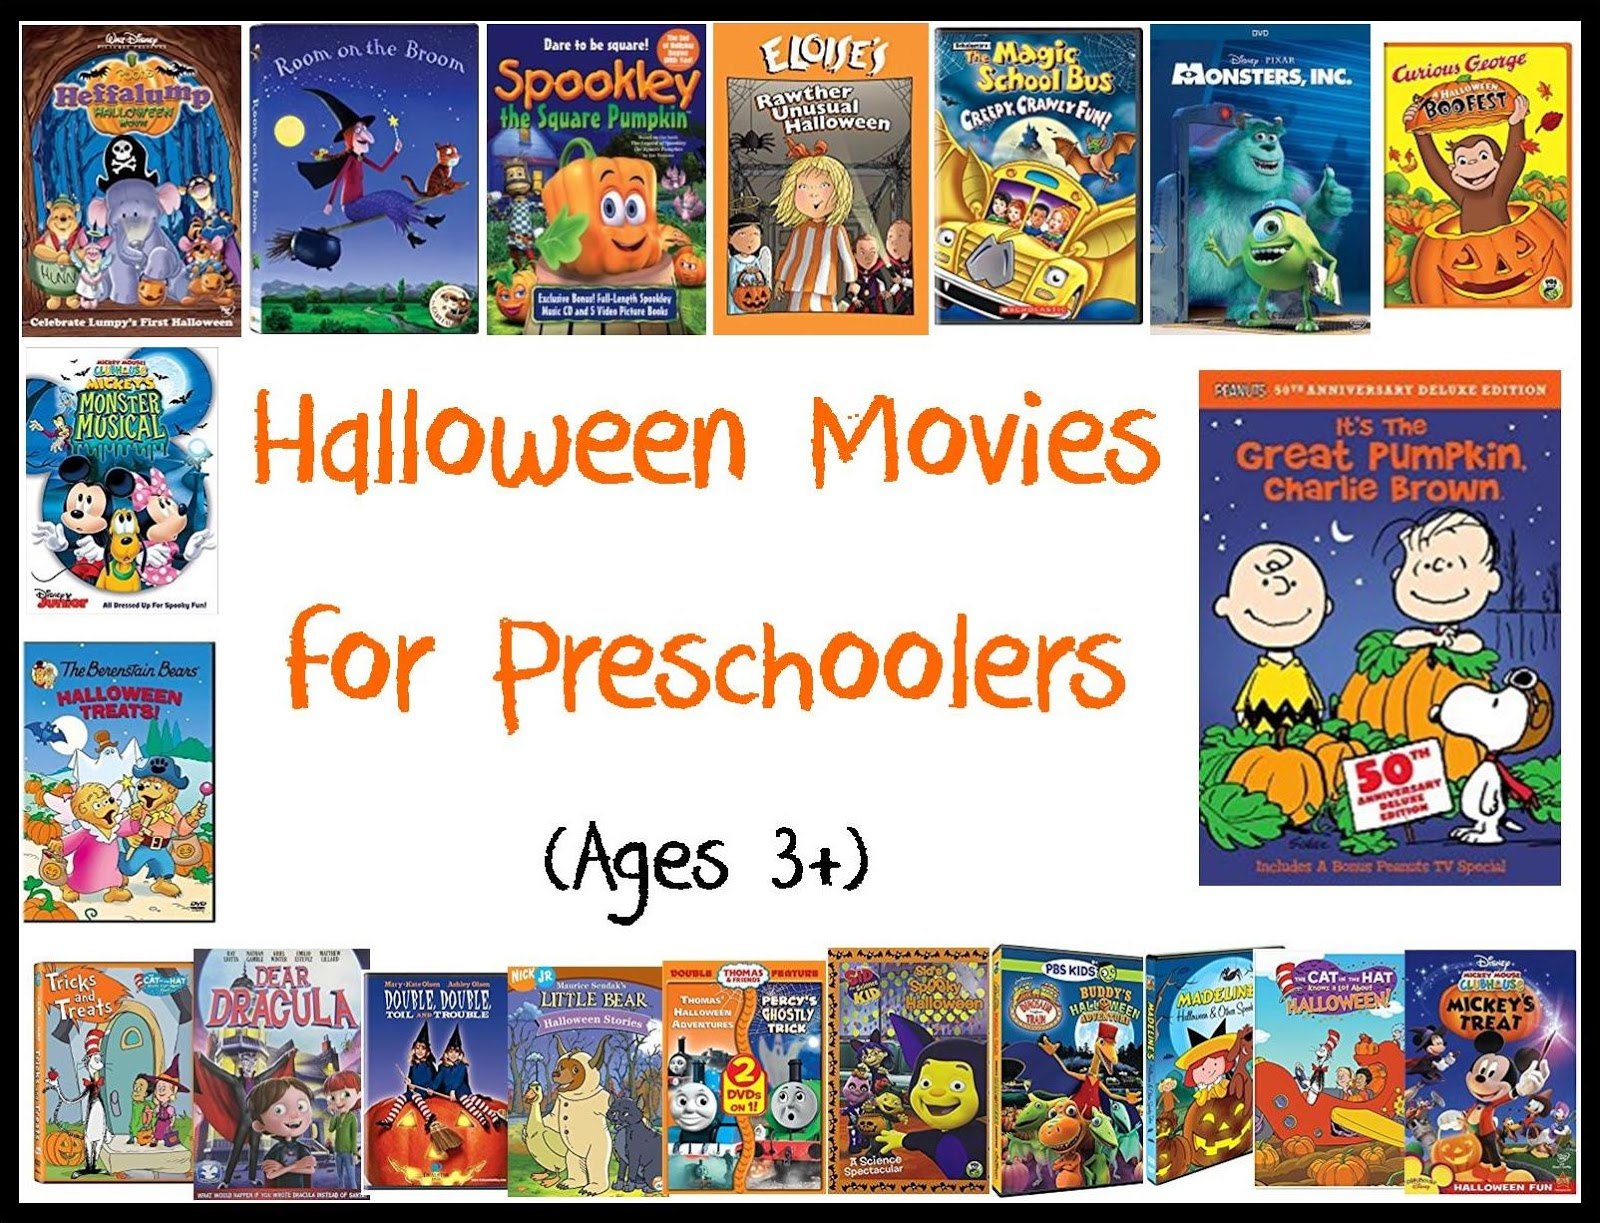 Sparrows at Home: Halloween Movies for Preschool-Aged Children